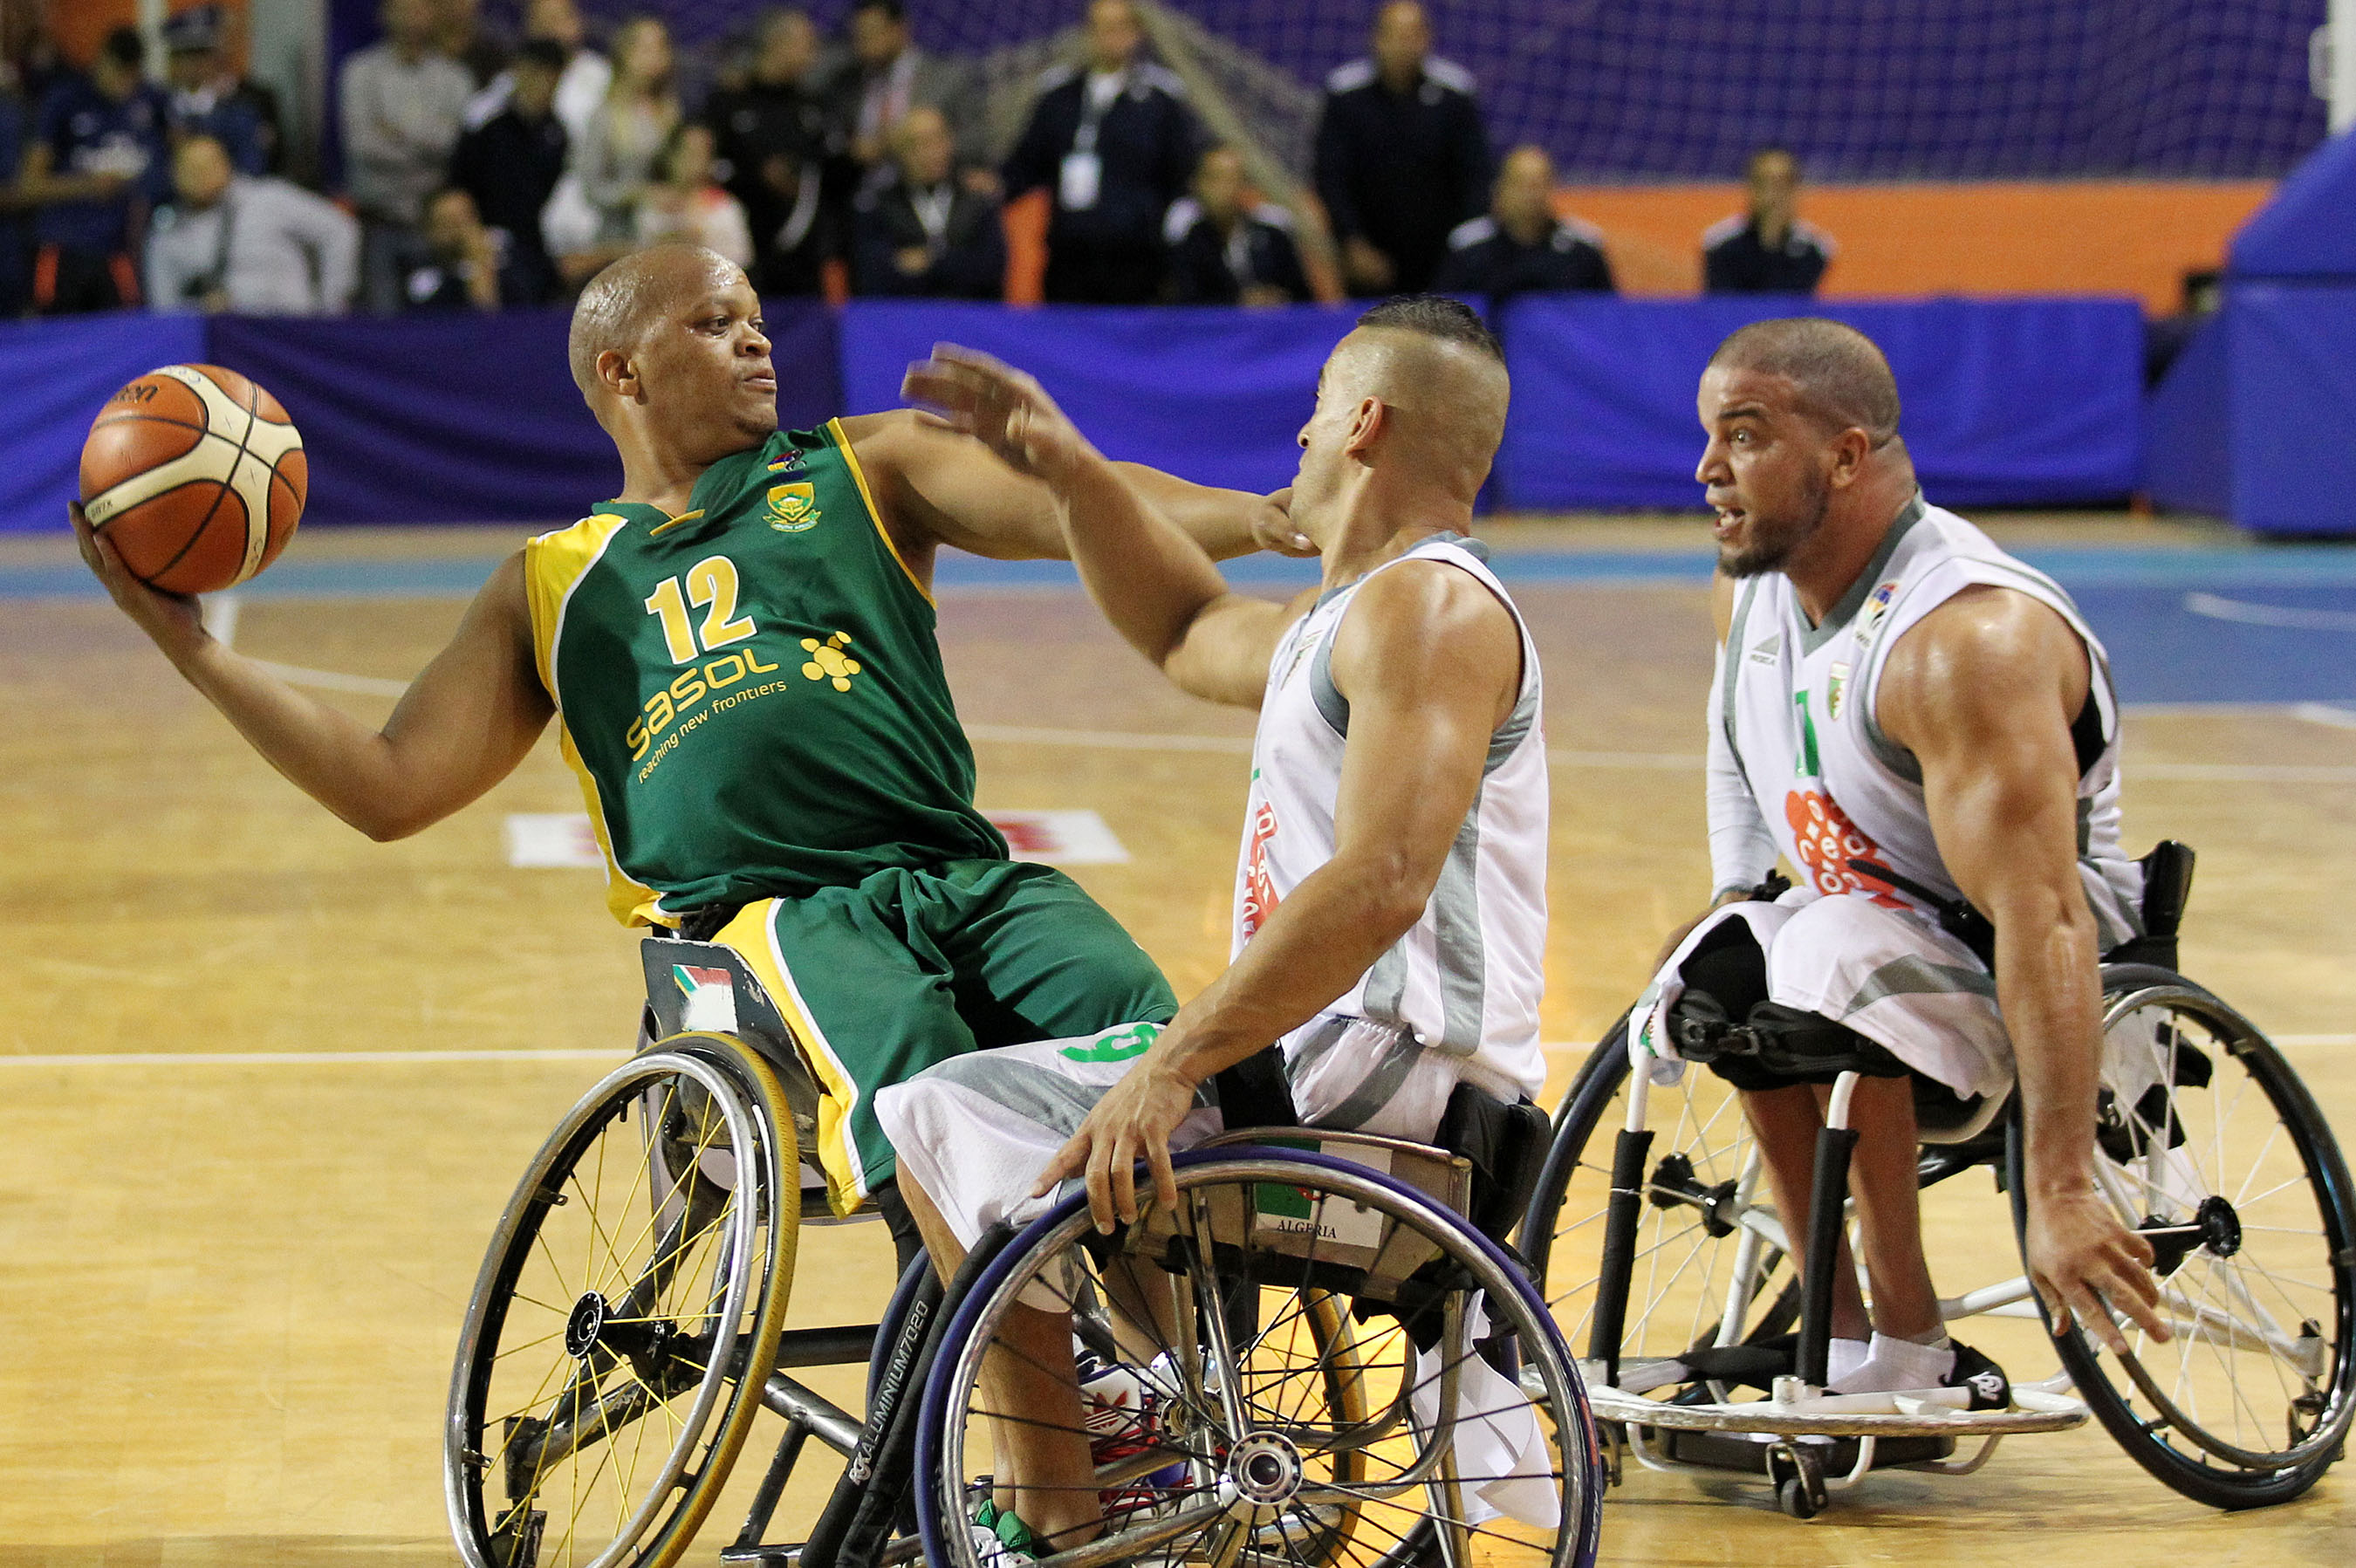 Amawheelaboys suffer opening defeat in Algeria